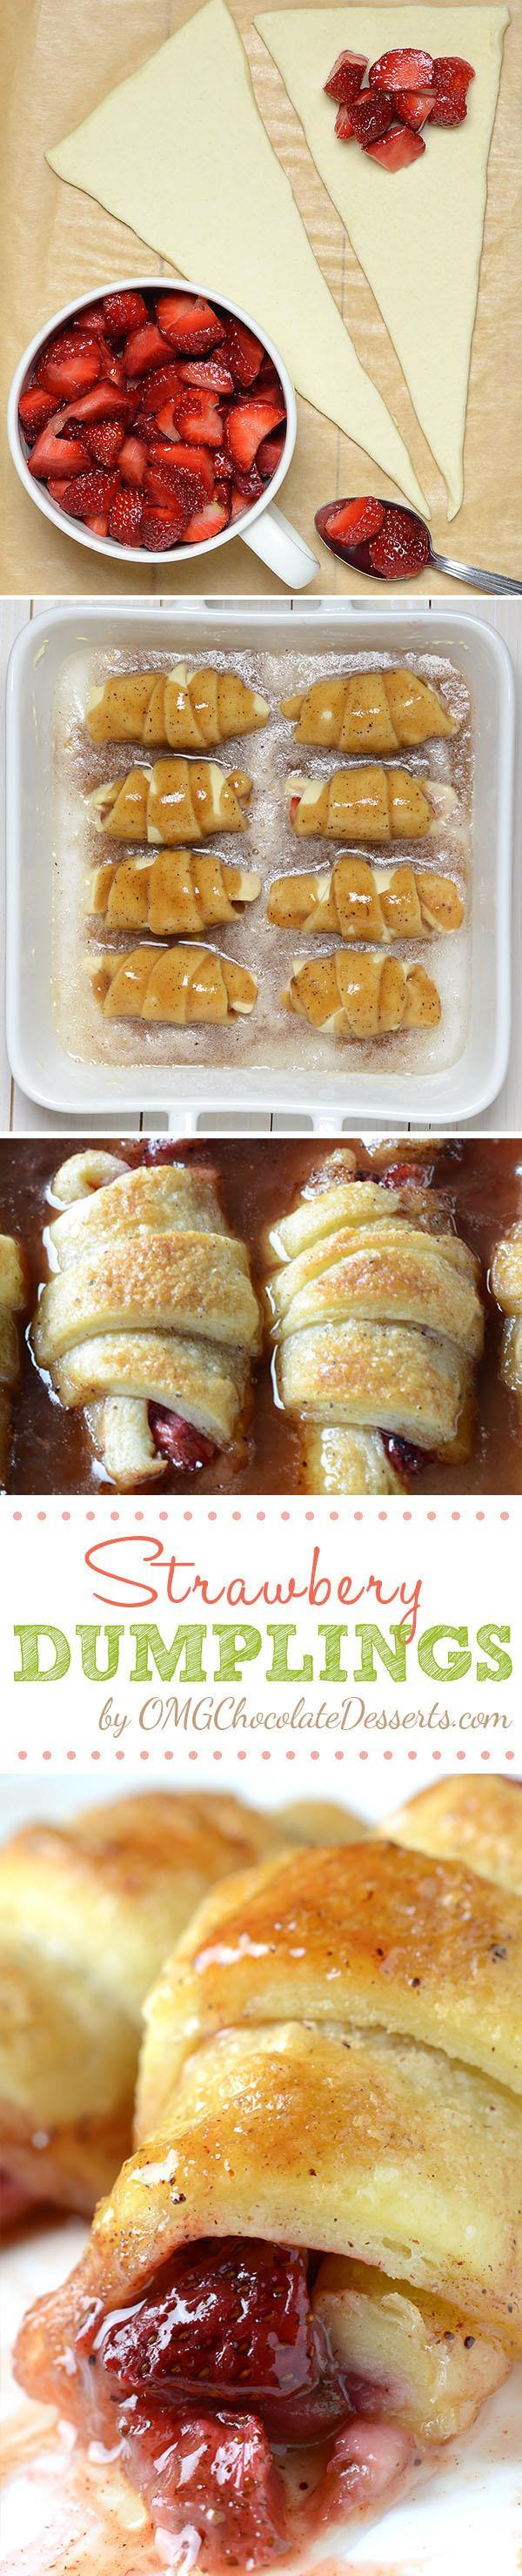 Strawberry Dumplings served with a scoop of vanilla ice cream will be perfect spring and summer treat. Crescent rolls filled with strawberries, baked in butter and brown sugar sauce, gets delightfully crisp tops while the bottoms stay soft and gooey.